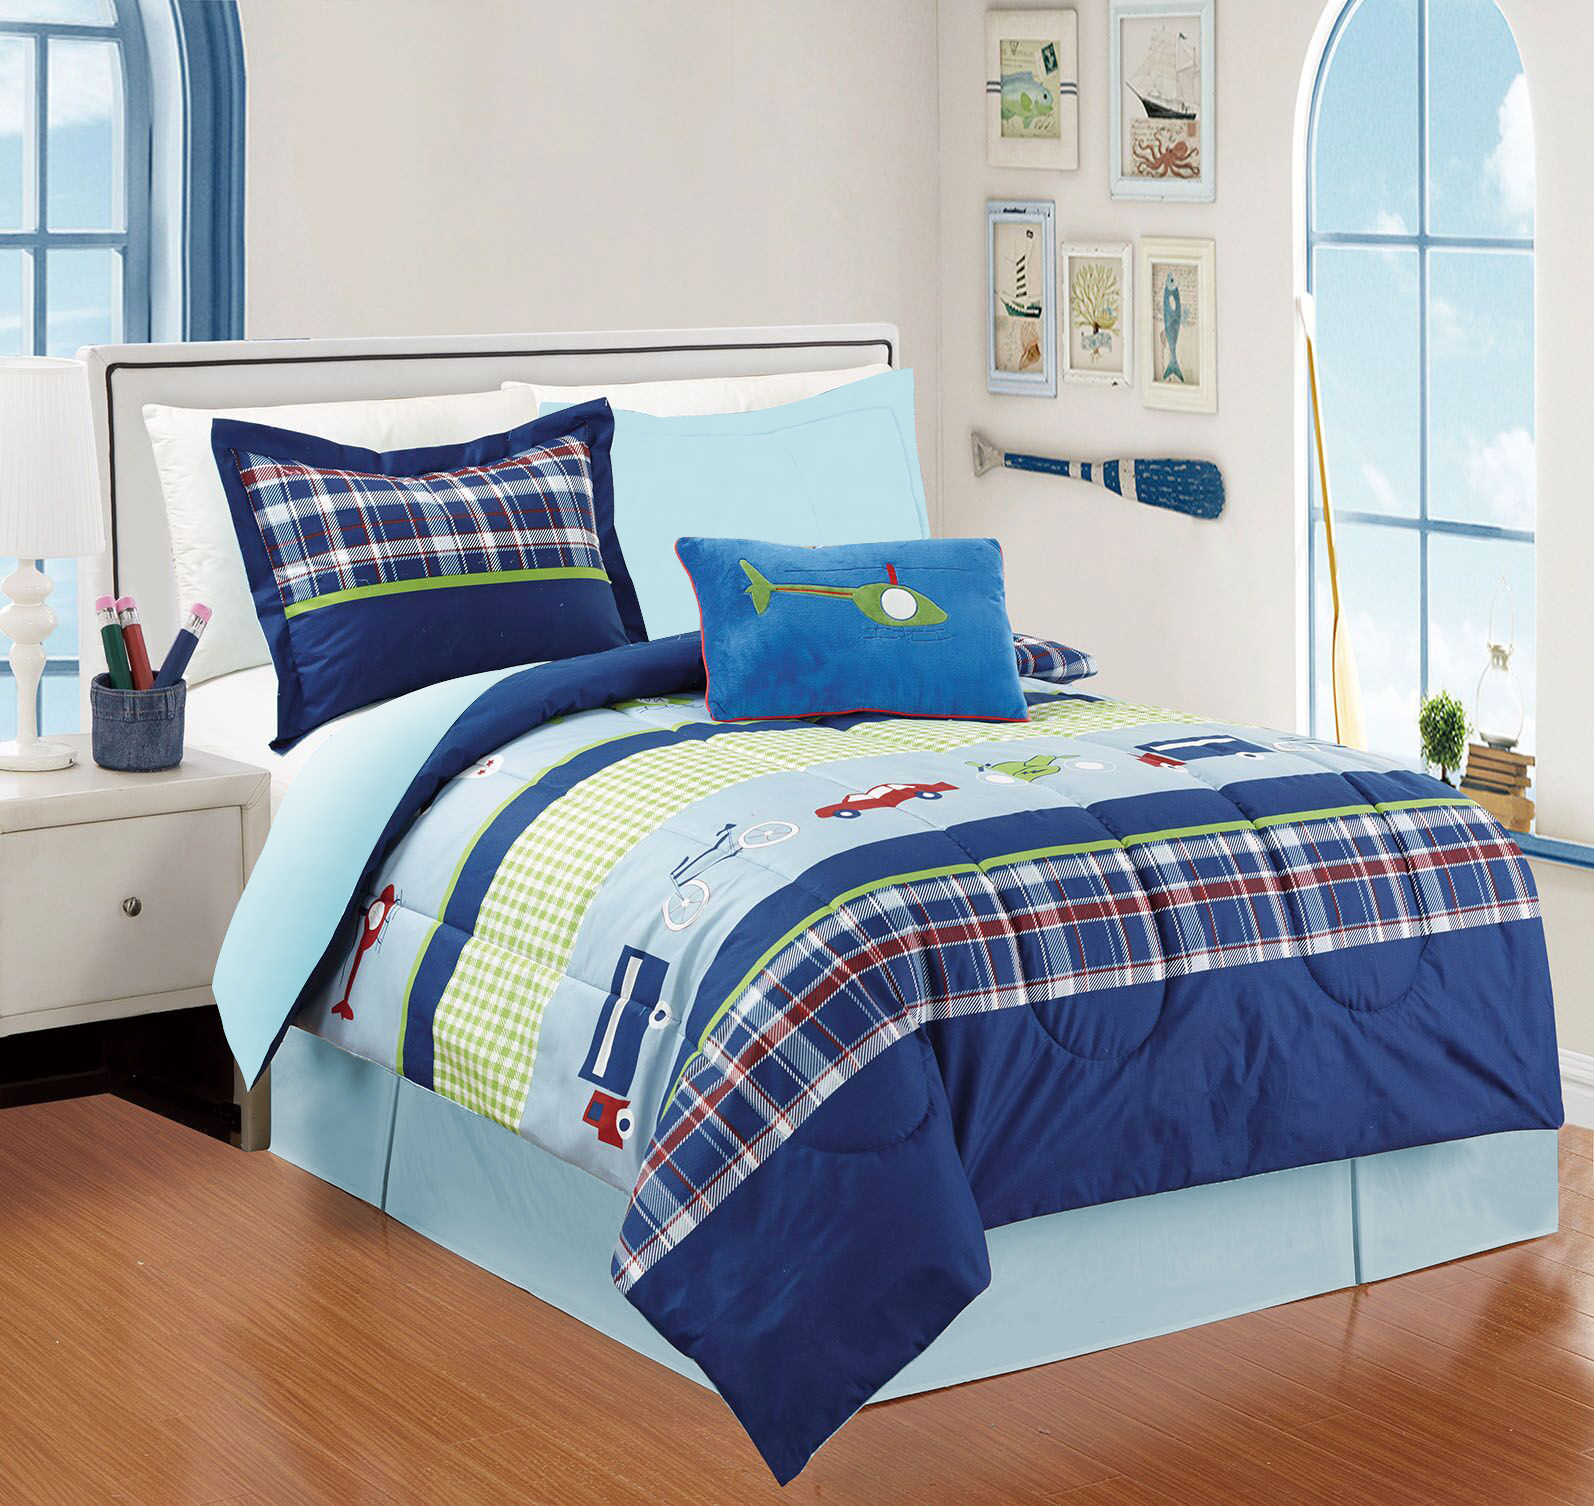 All American Collection 4 Piece Twin Size Auto's Comforter Set with Bed-skirt